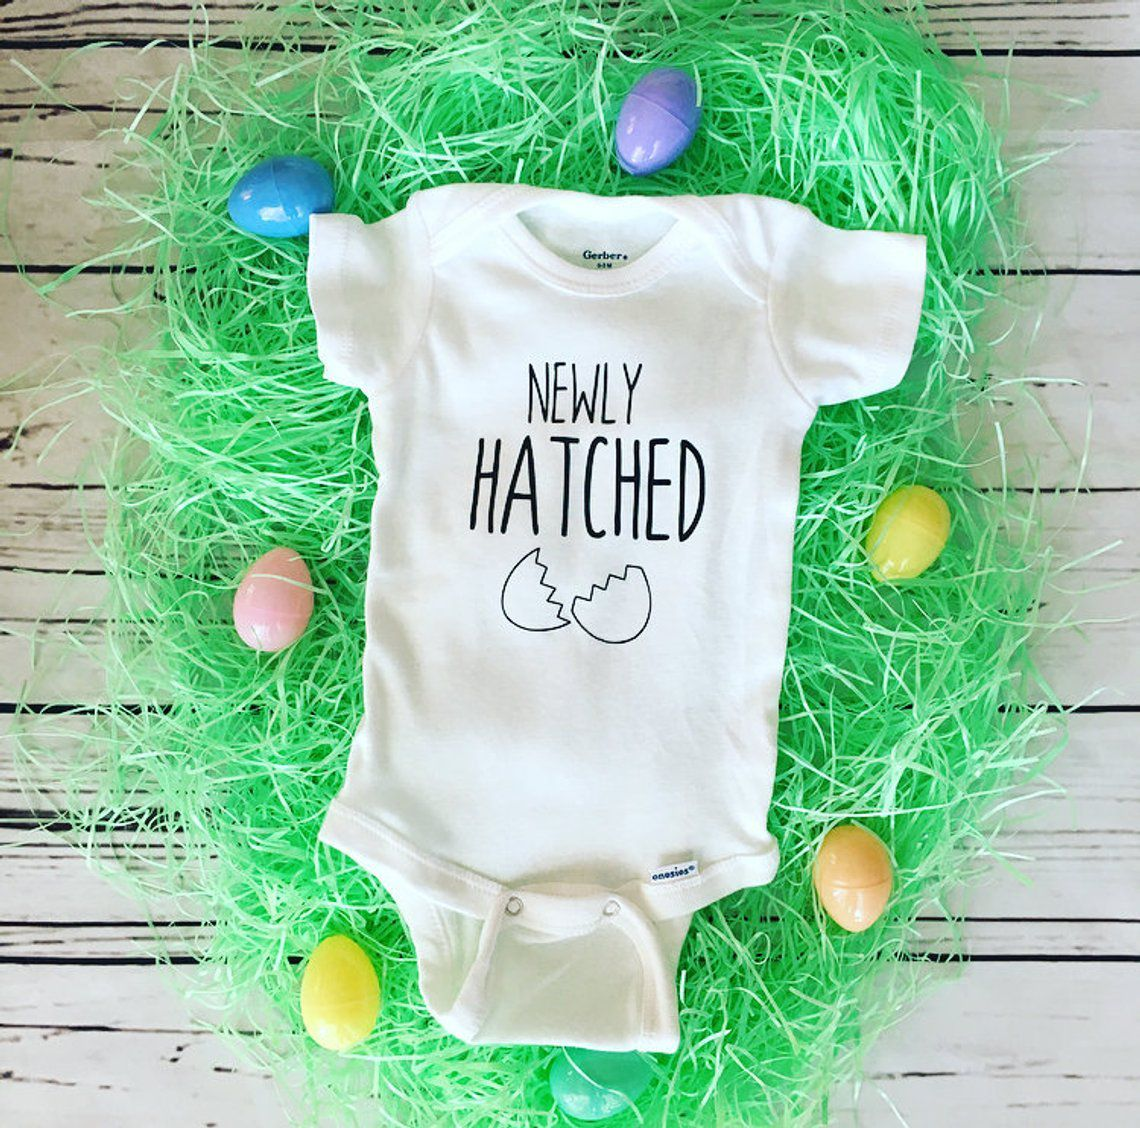 90a96461d7d2a 20 Best Baby Easter Outfits - First Easter Baby Outfits for Boys and Girls